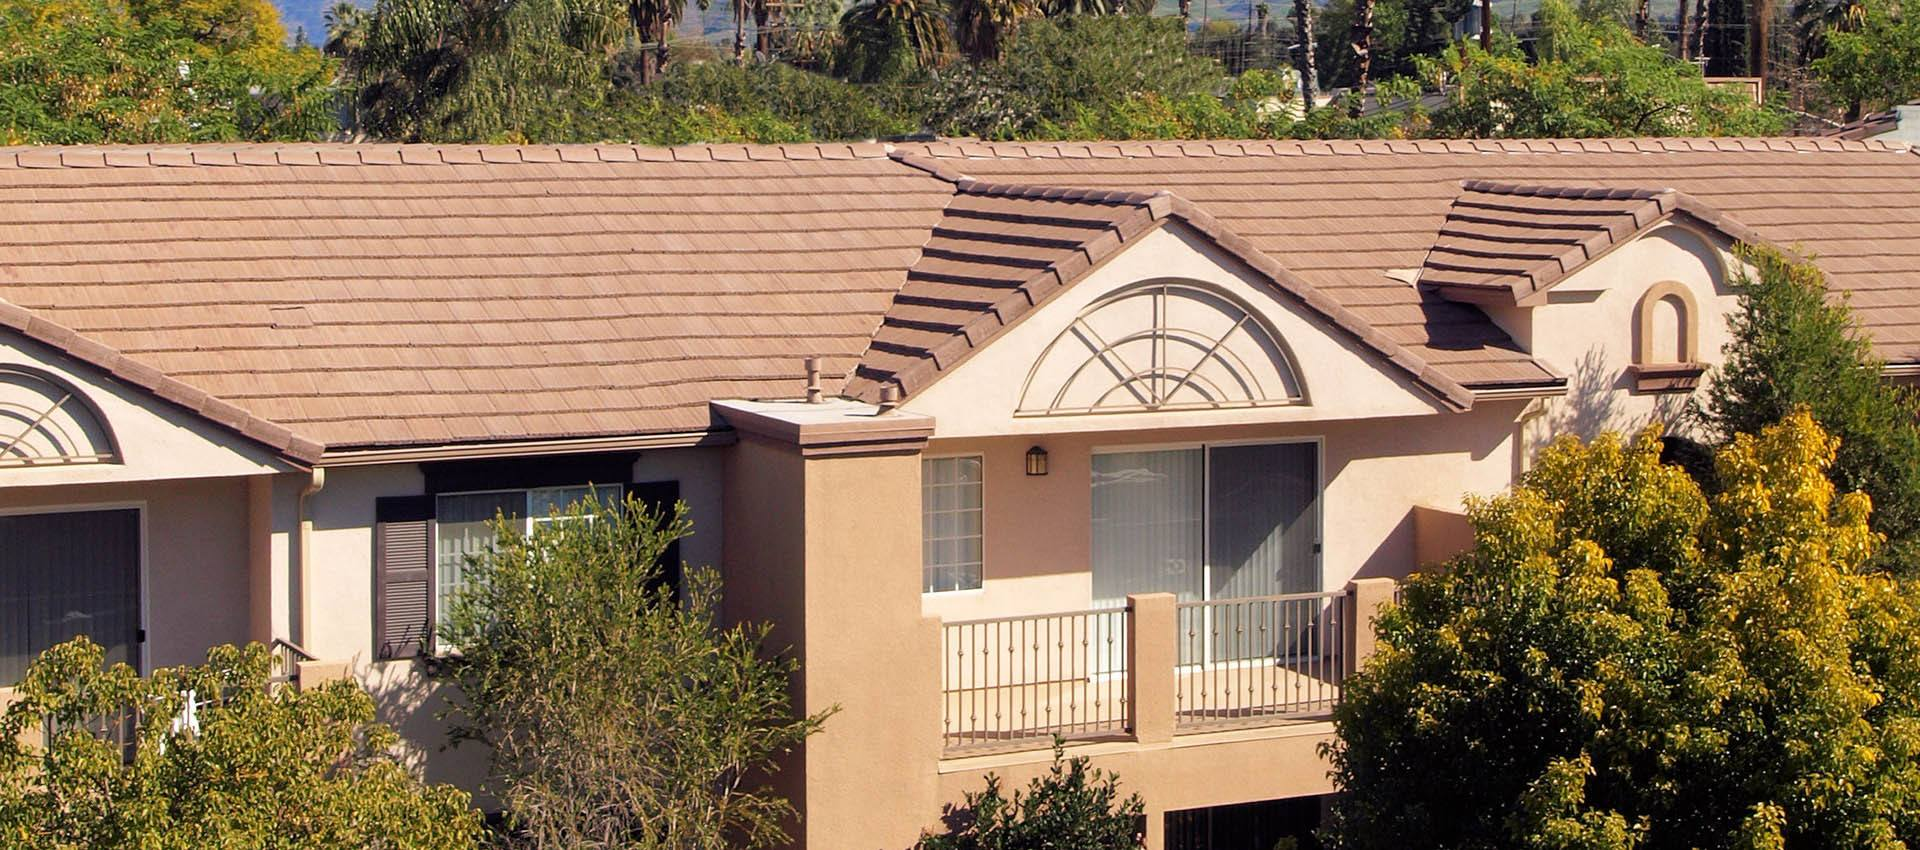 Building Roofline at Cypress Villas Apartment Homes in Redlands, CA